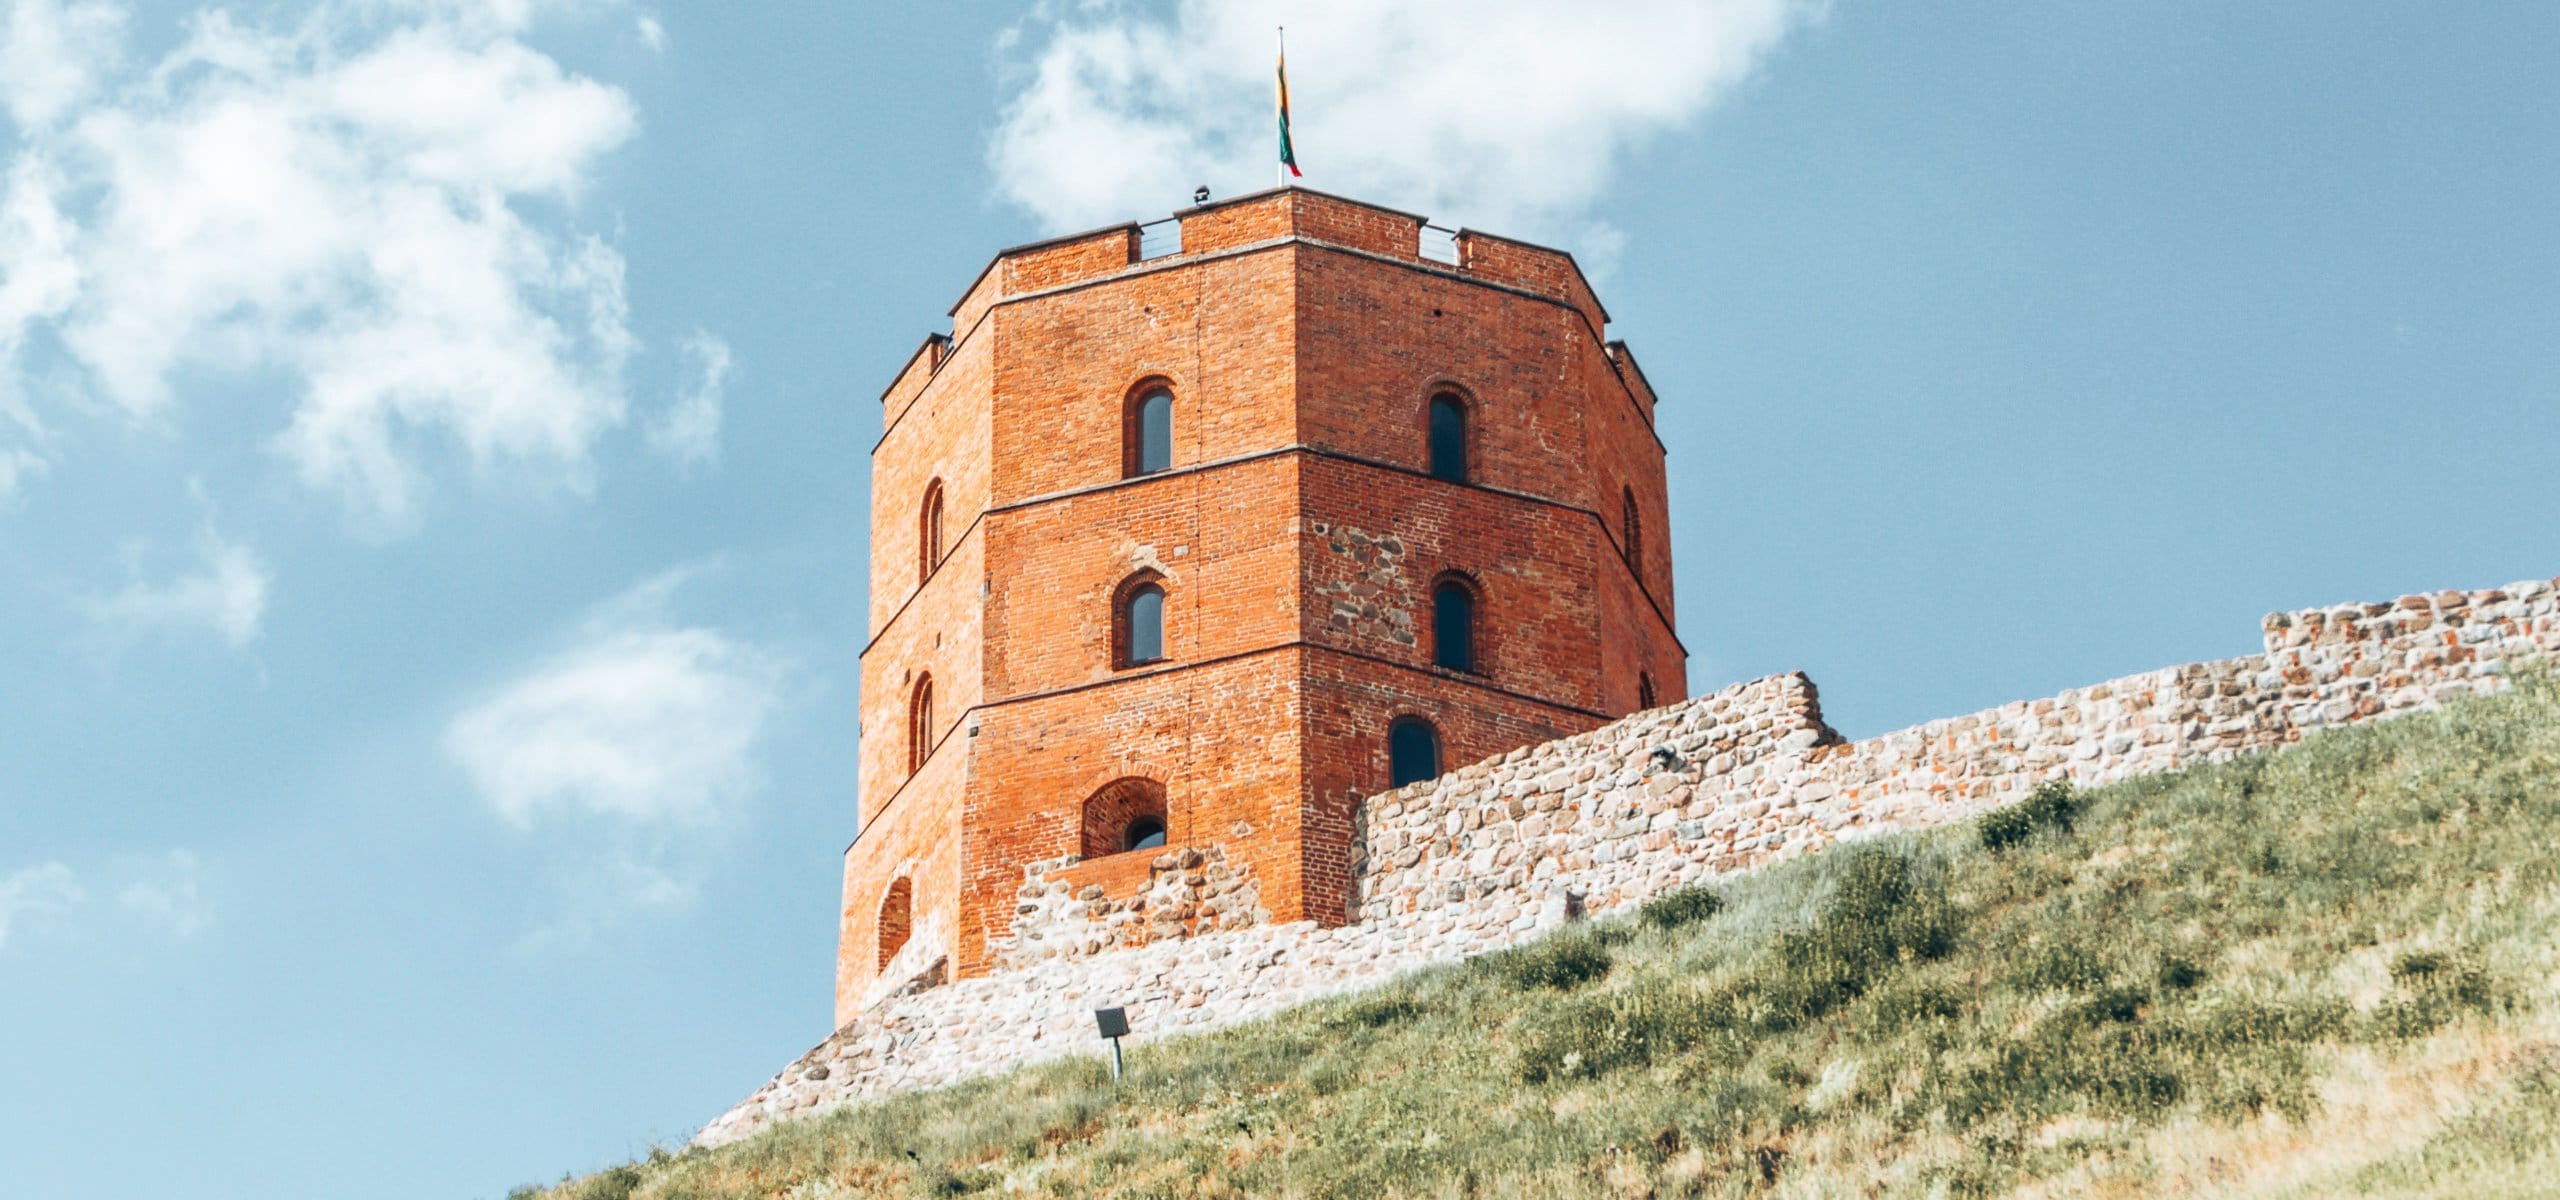 The view of Gediminas Castle Tower from below on a clear day, Vilnius, Lithuania